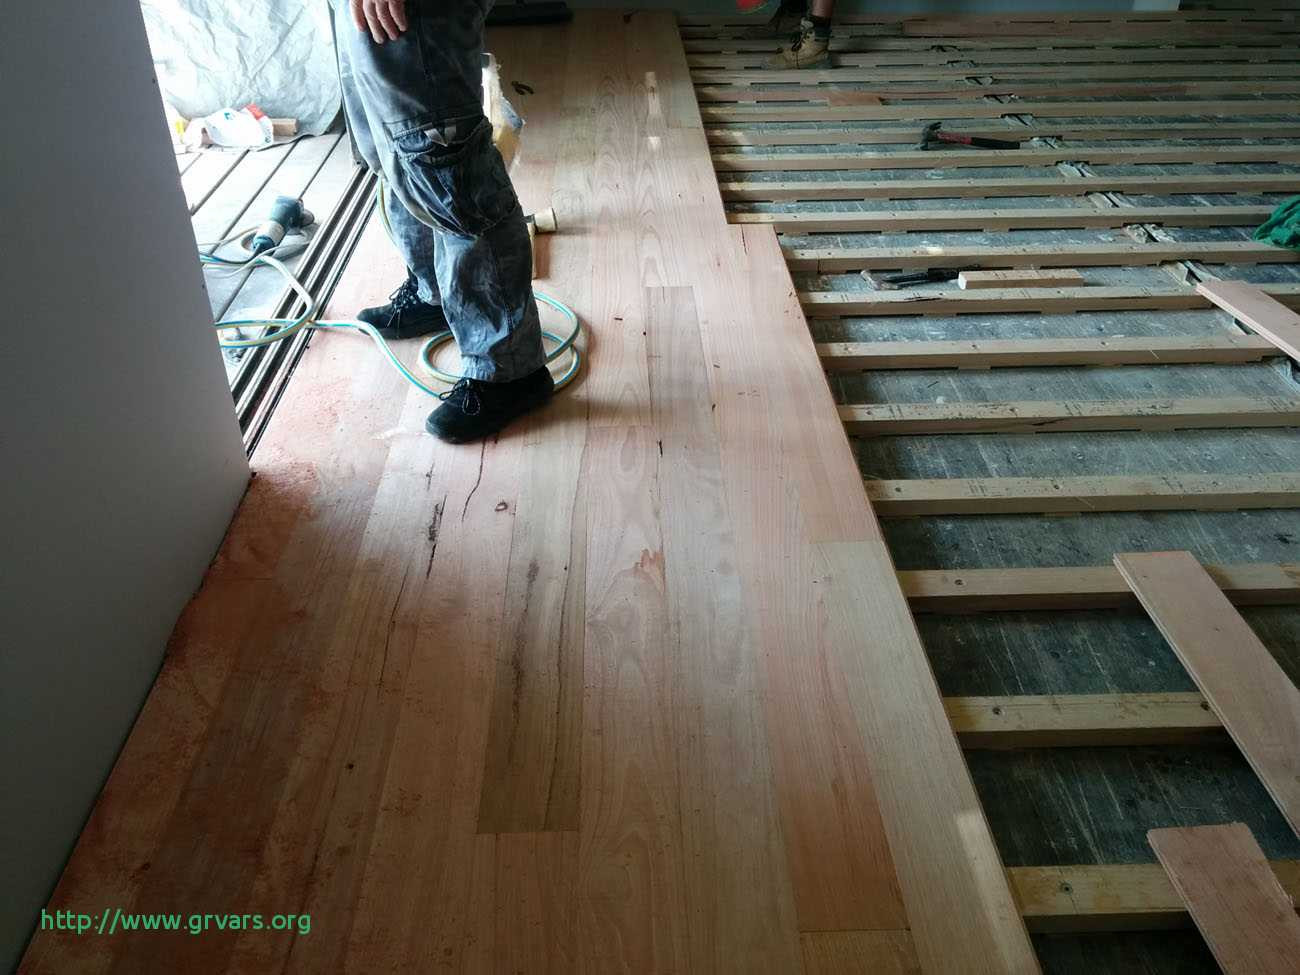 mohawk hardwood and laminate floor cleaner msds of 21 charmant how to cut laminate flooring without chipping ideas blog with how to cut laminate flooring without chipping meilleur de shipping container house hardwood flooring 135 odpod